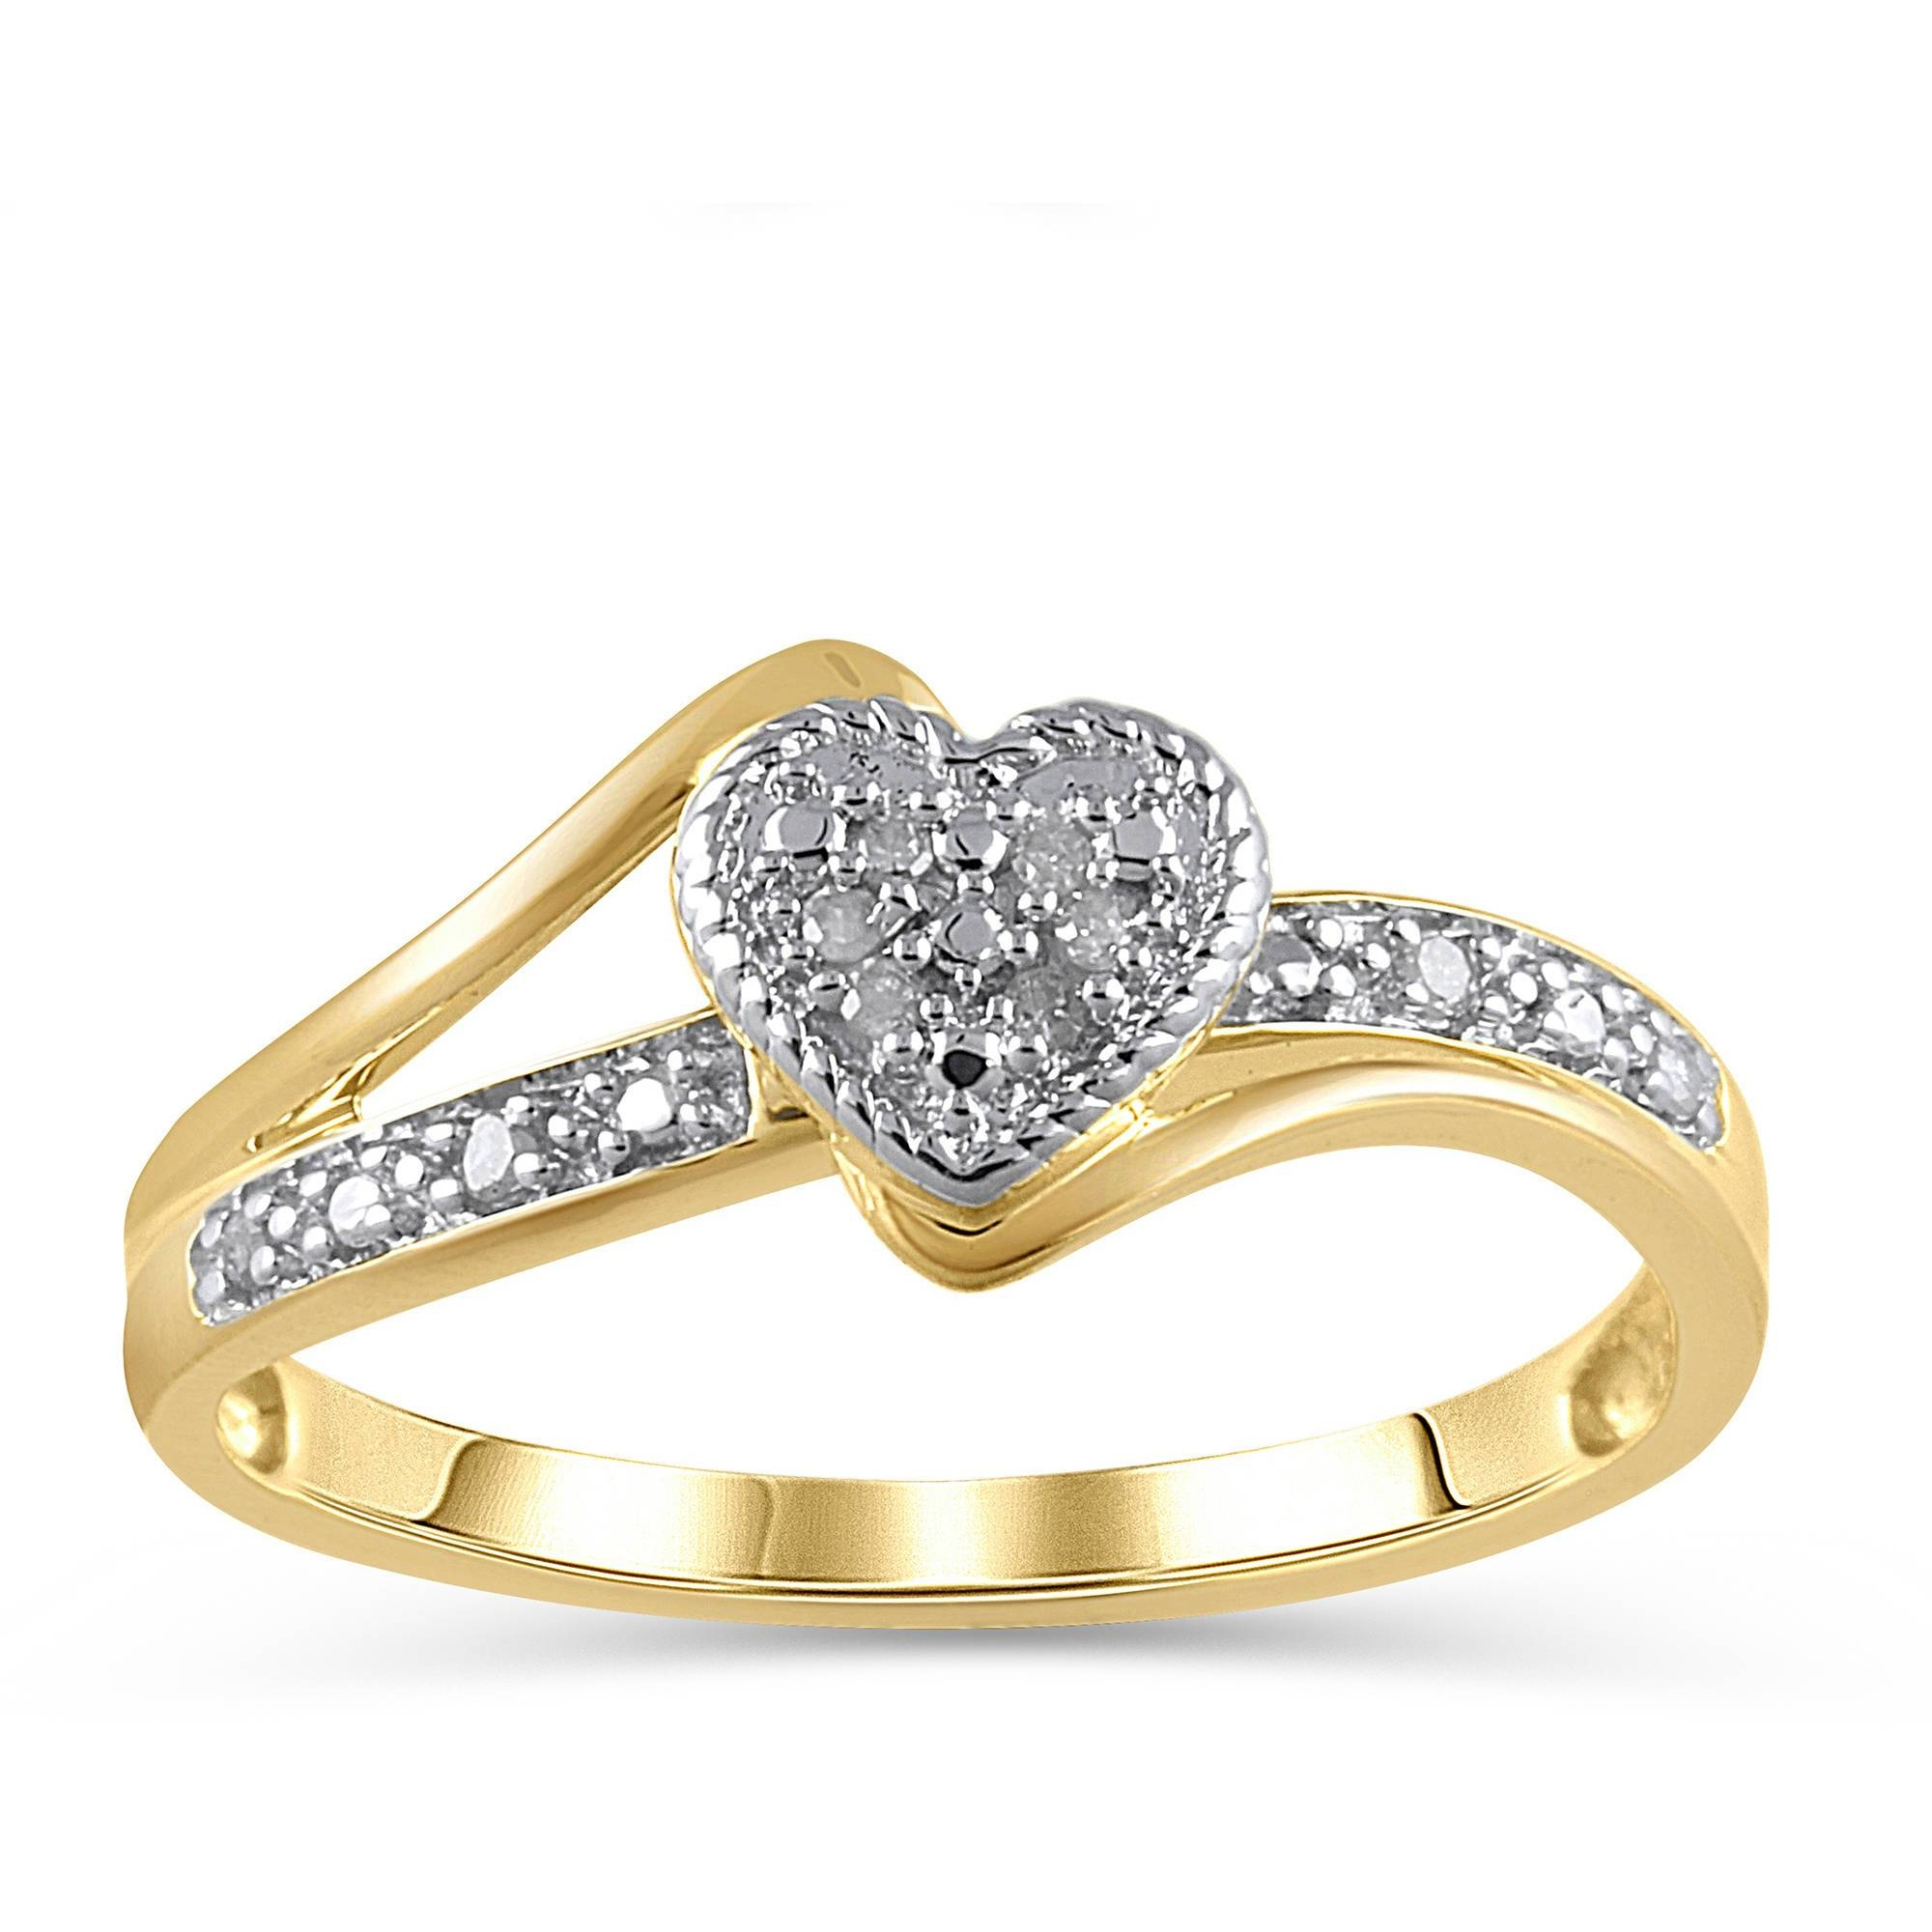 15 Inspirations of Walmart Wedding Rings For Women